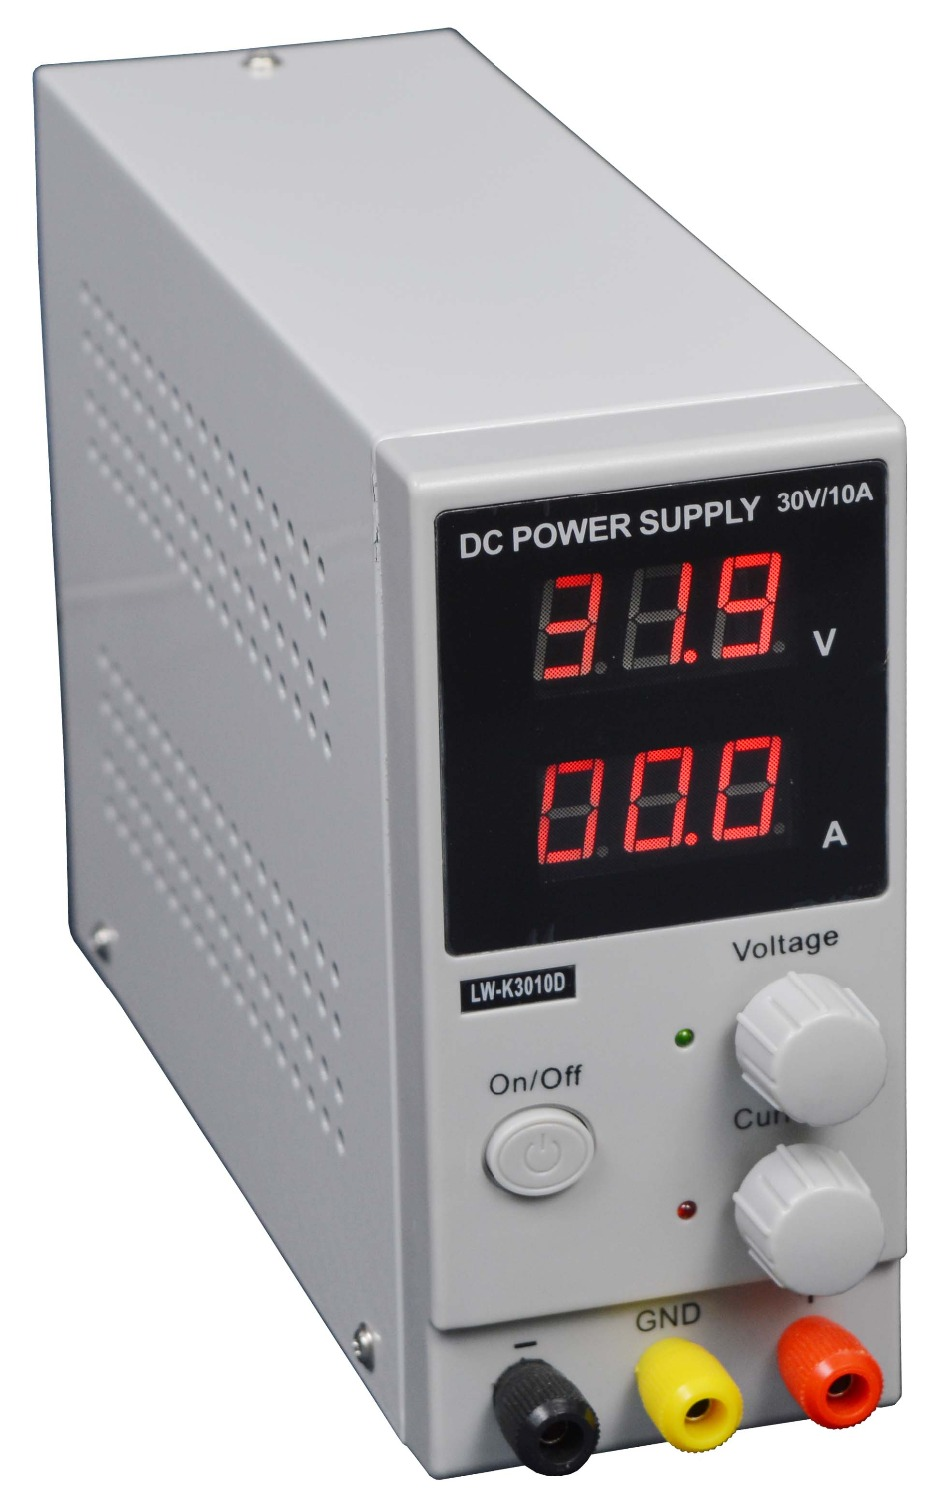 12PCS LW-3010D 110V 220V Mini Adjustable Digital DC power supply0~30V 0~10A ,Switching Power supply, certification,US/EU/AU Plug original lw mini adjustable digital dc power supply 0 30v 0 10a 110v 220v switching power supply 0 01v 0 01a 34 pcs dc jack